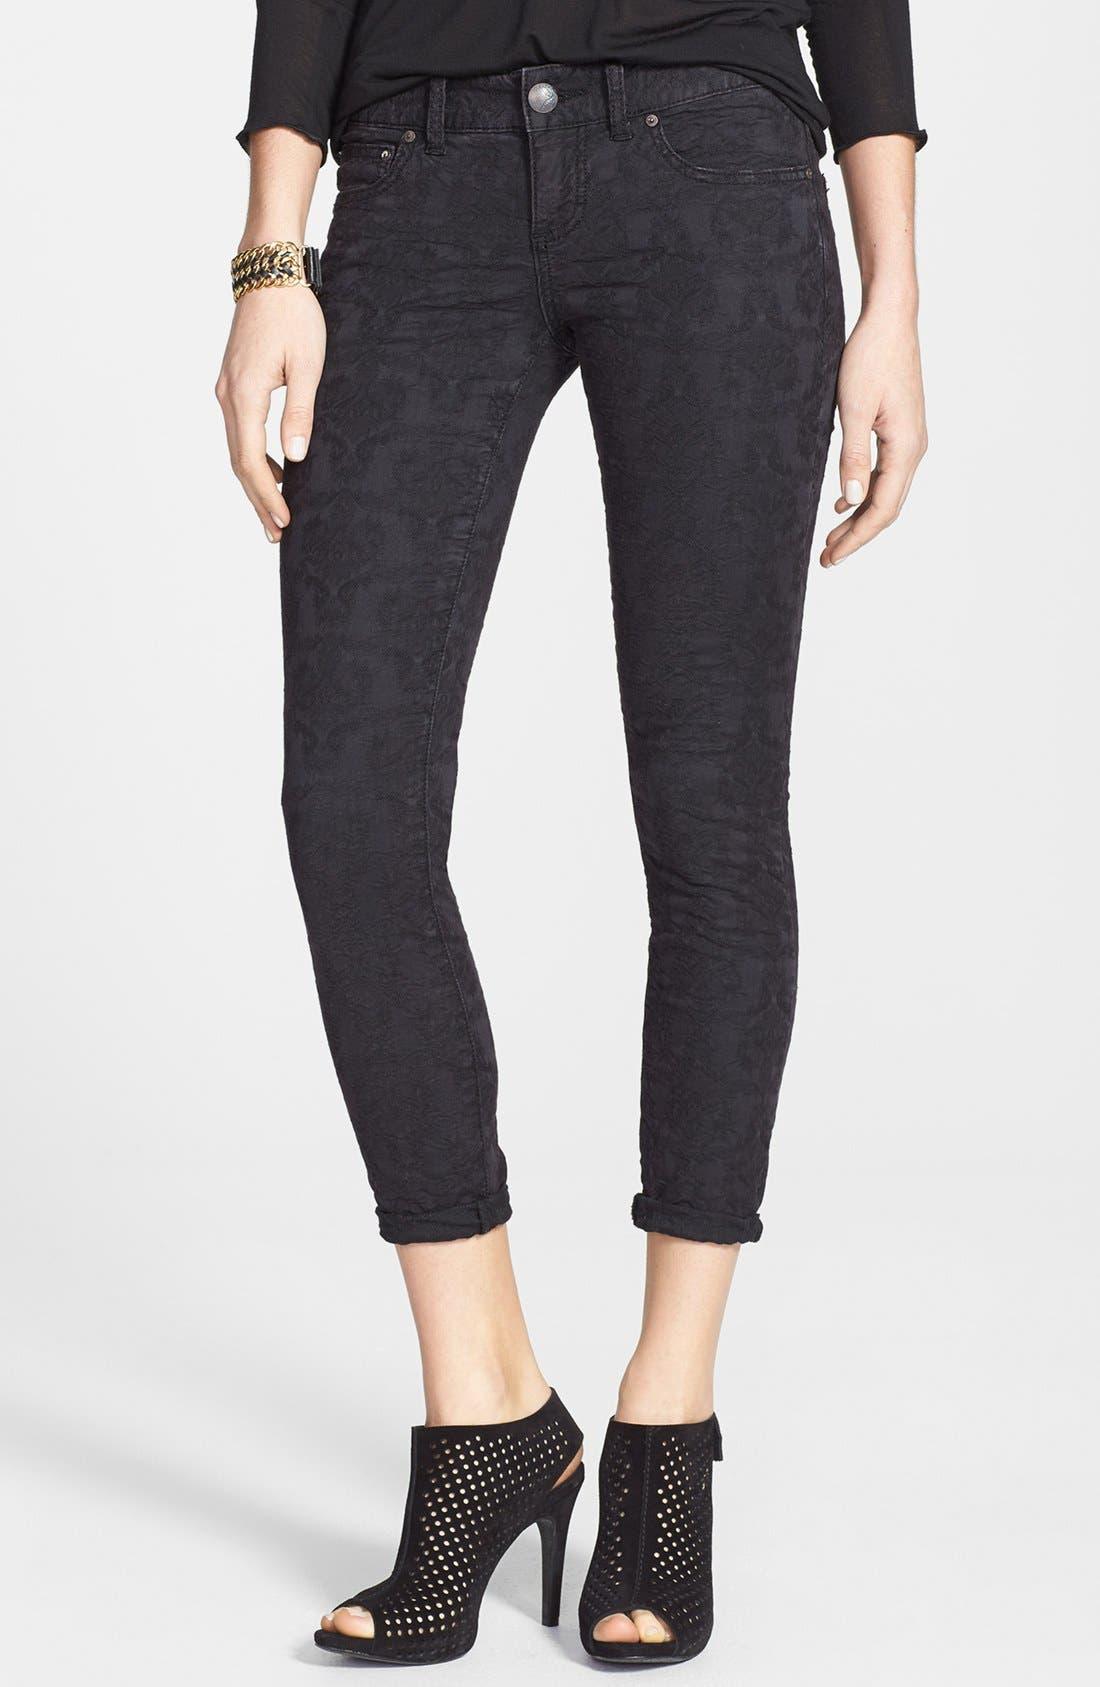 Alternate Image 1 Selected - Free People Jacquard Skinny Jeans (Cranberry)